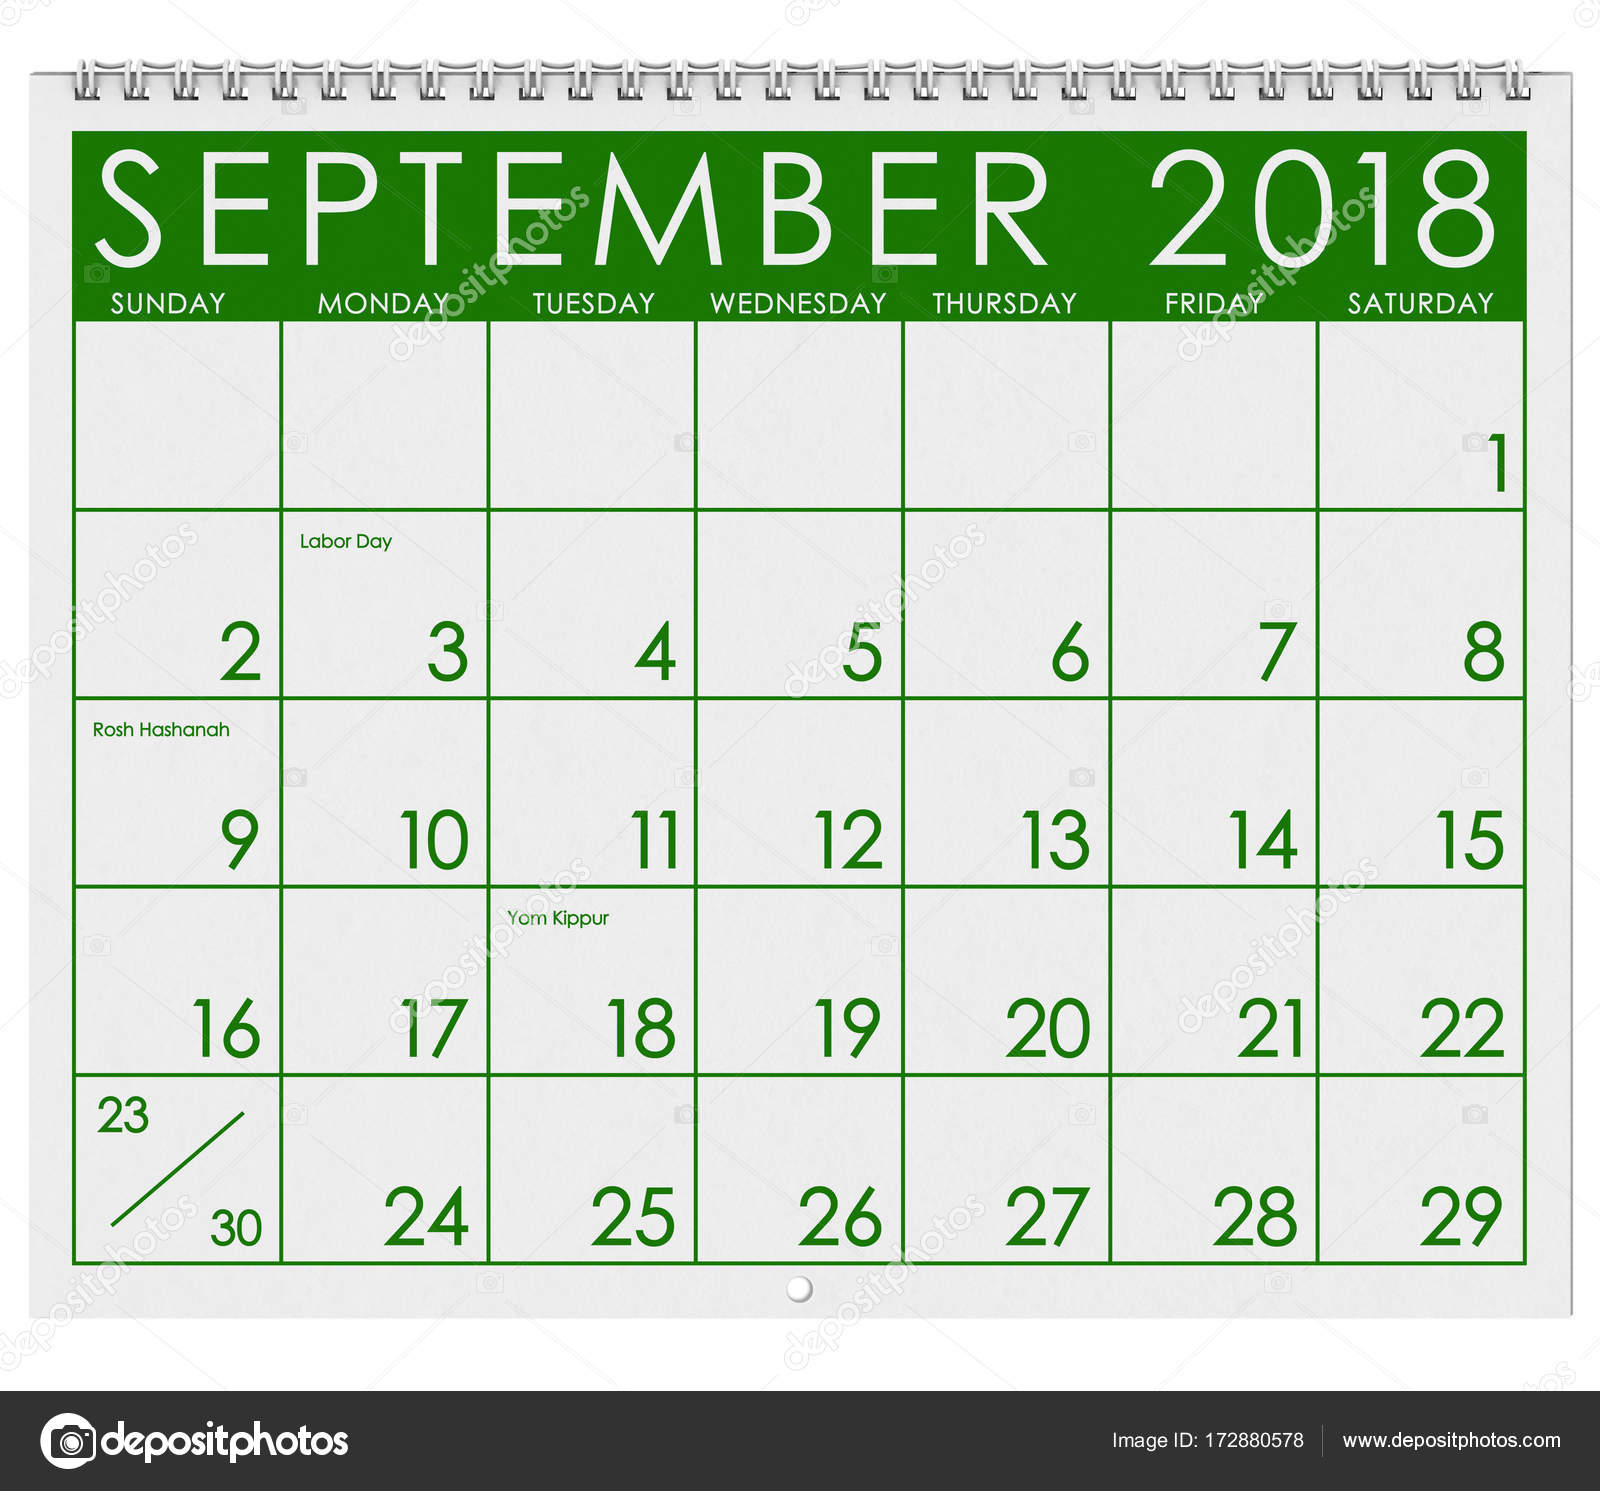 2018 Calendar: Month Of September with Labor Day — Stock Photo